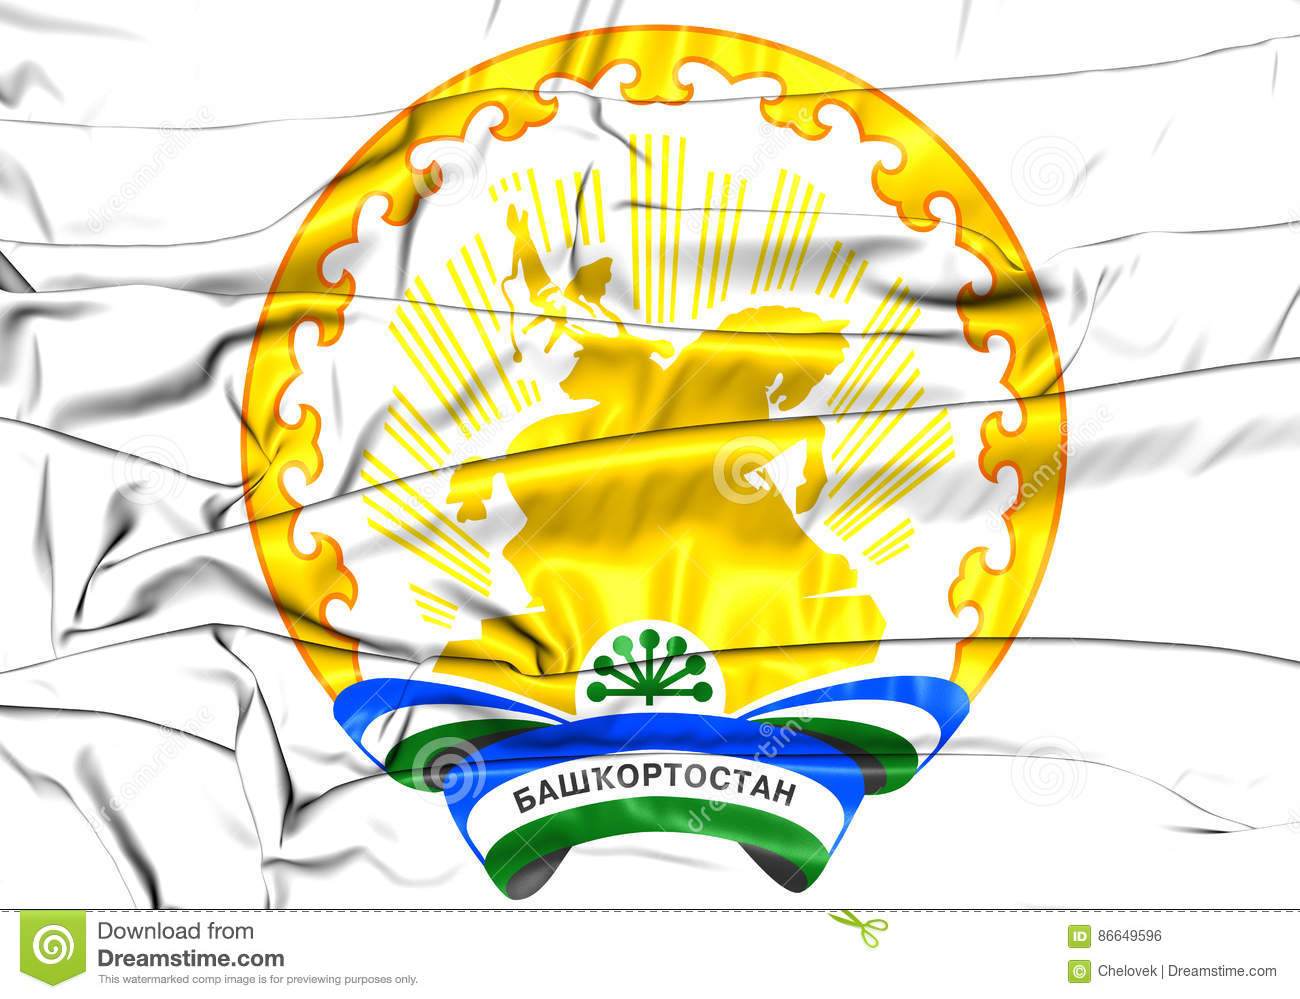 Flag and coat of arms of the Republic of Bashkortostan